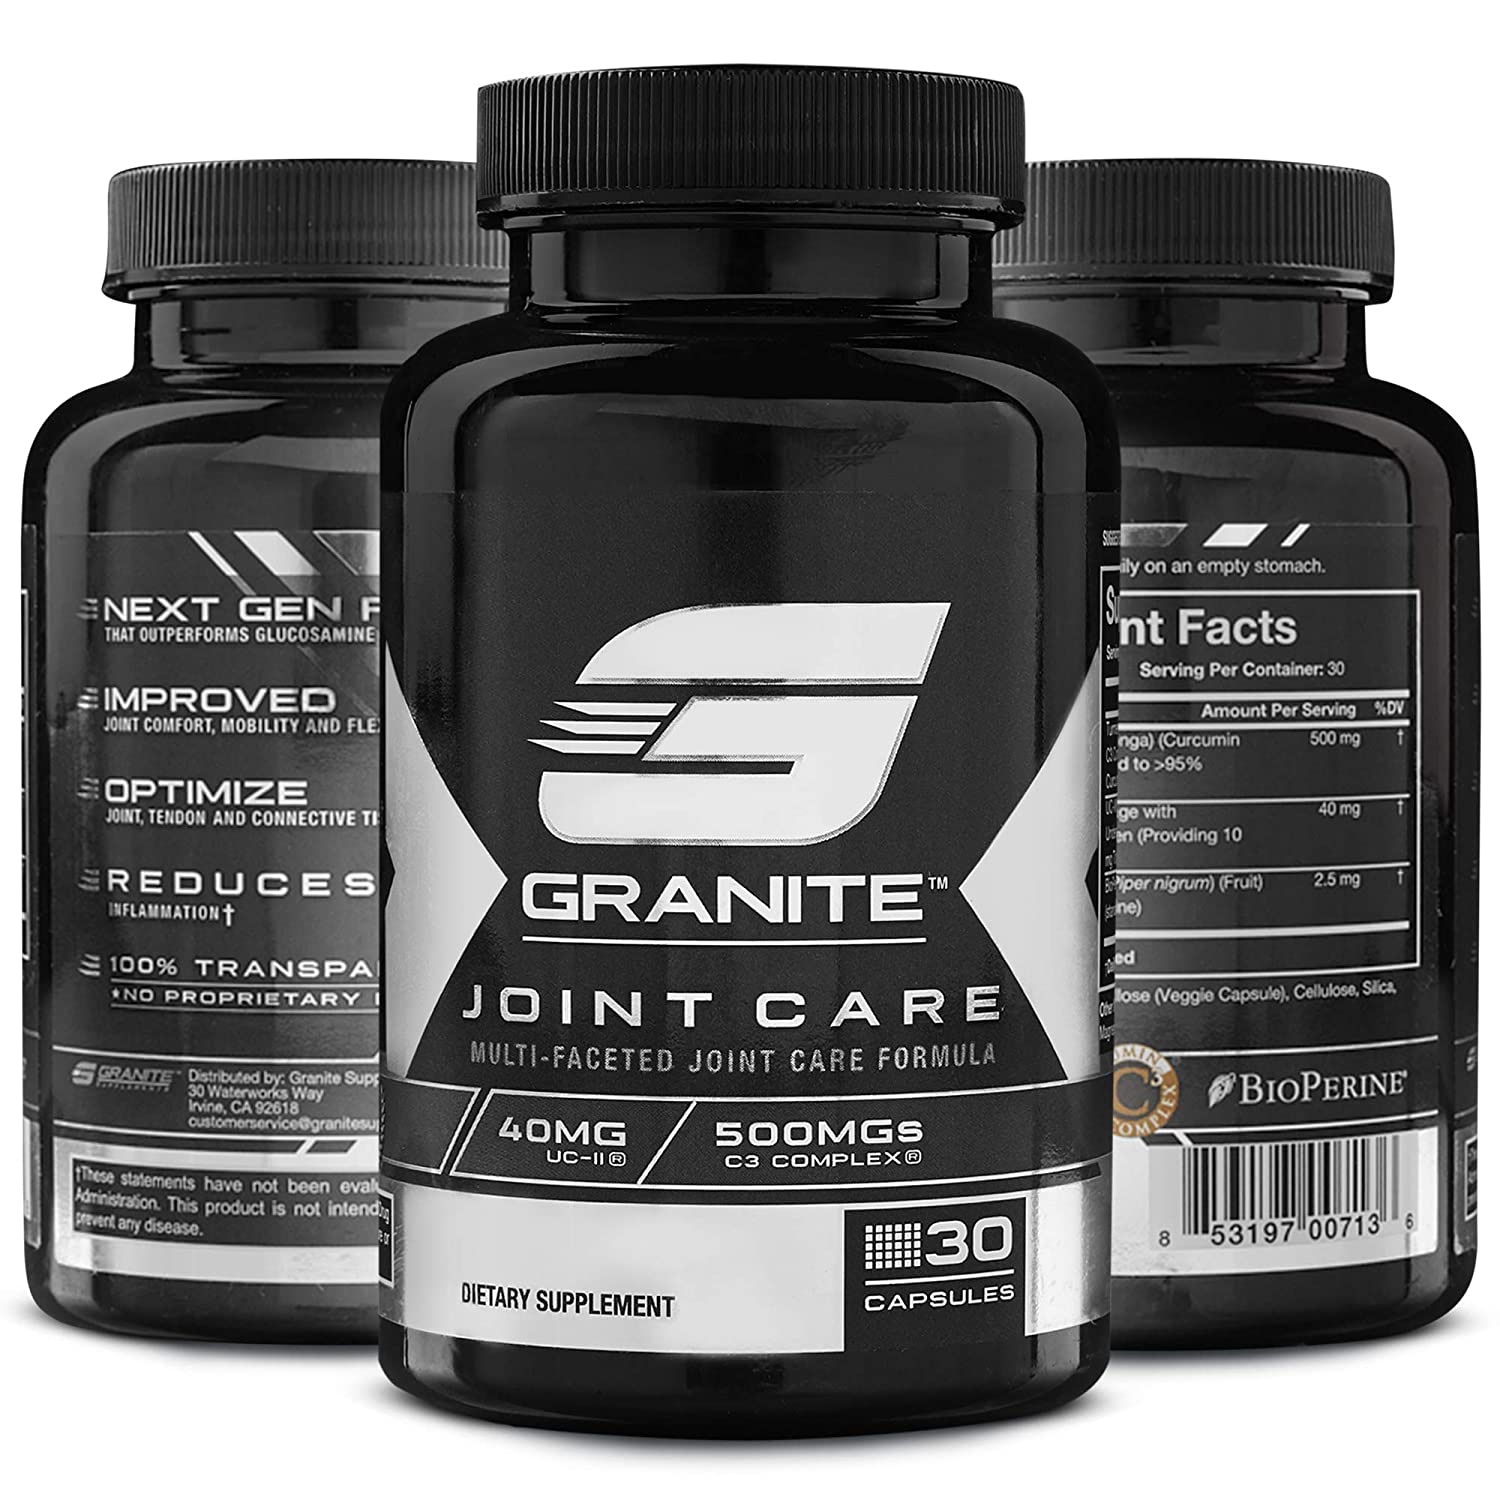 Joint Care by Granite Supplements 30 Capsules to Support Joint Flexibility, Health, and Comfort Includes Patented Undenatured Collagen as UC-II, Curcumin C3 Complex, and Bioperine